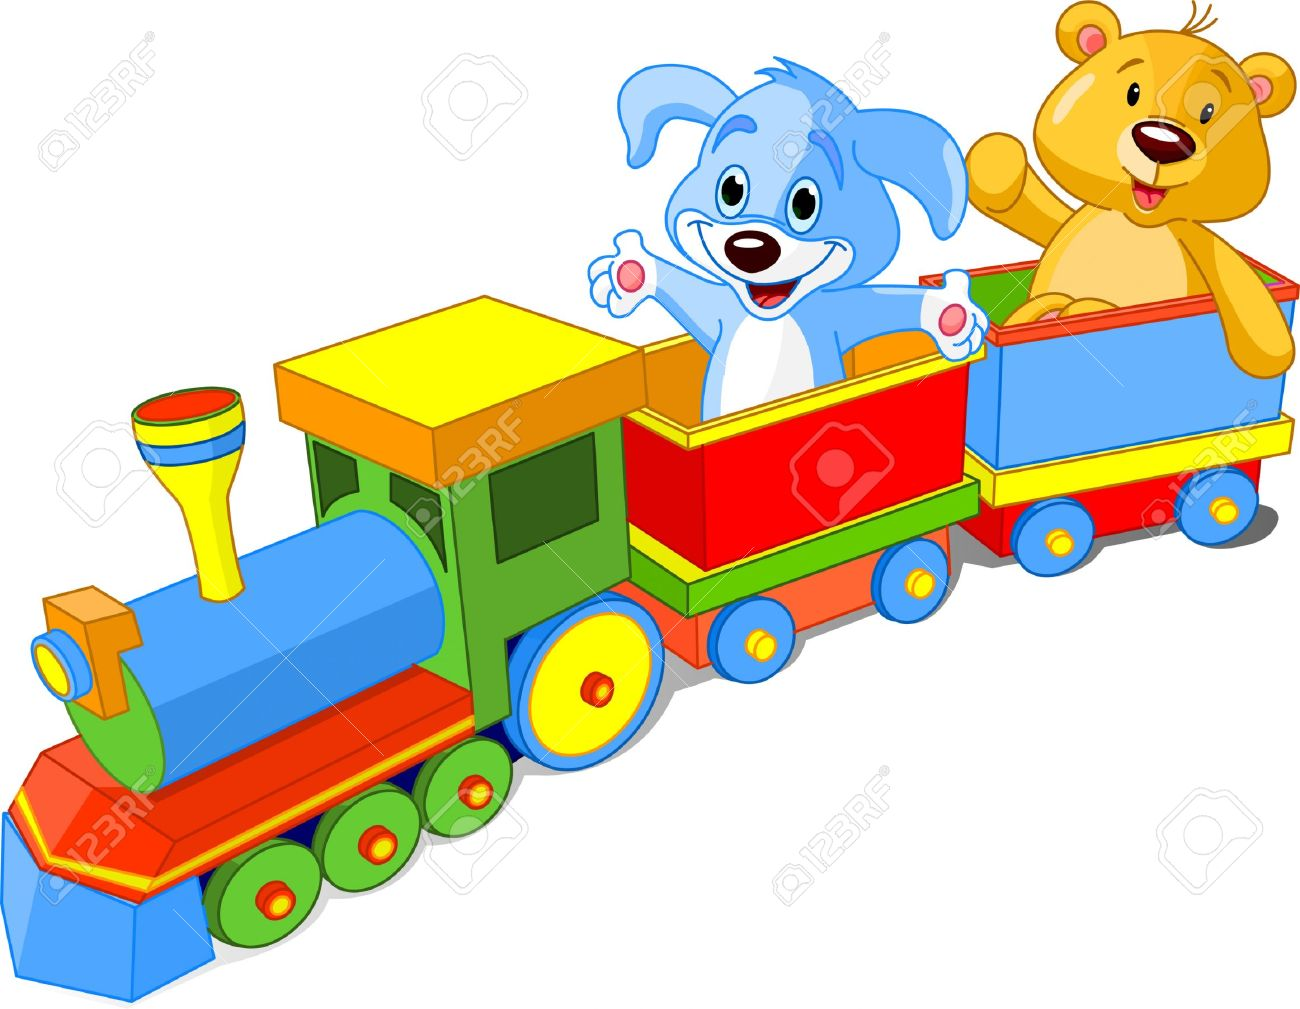 Toy Train. Dog And Teddy Sitting In Car And Waiving Hello. Royalty.